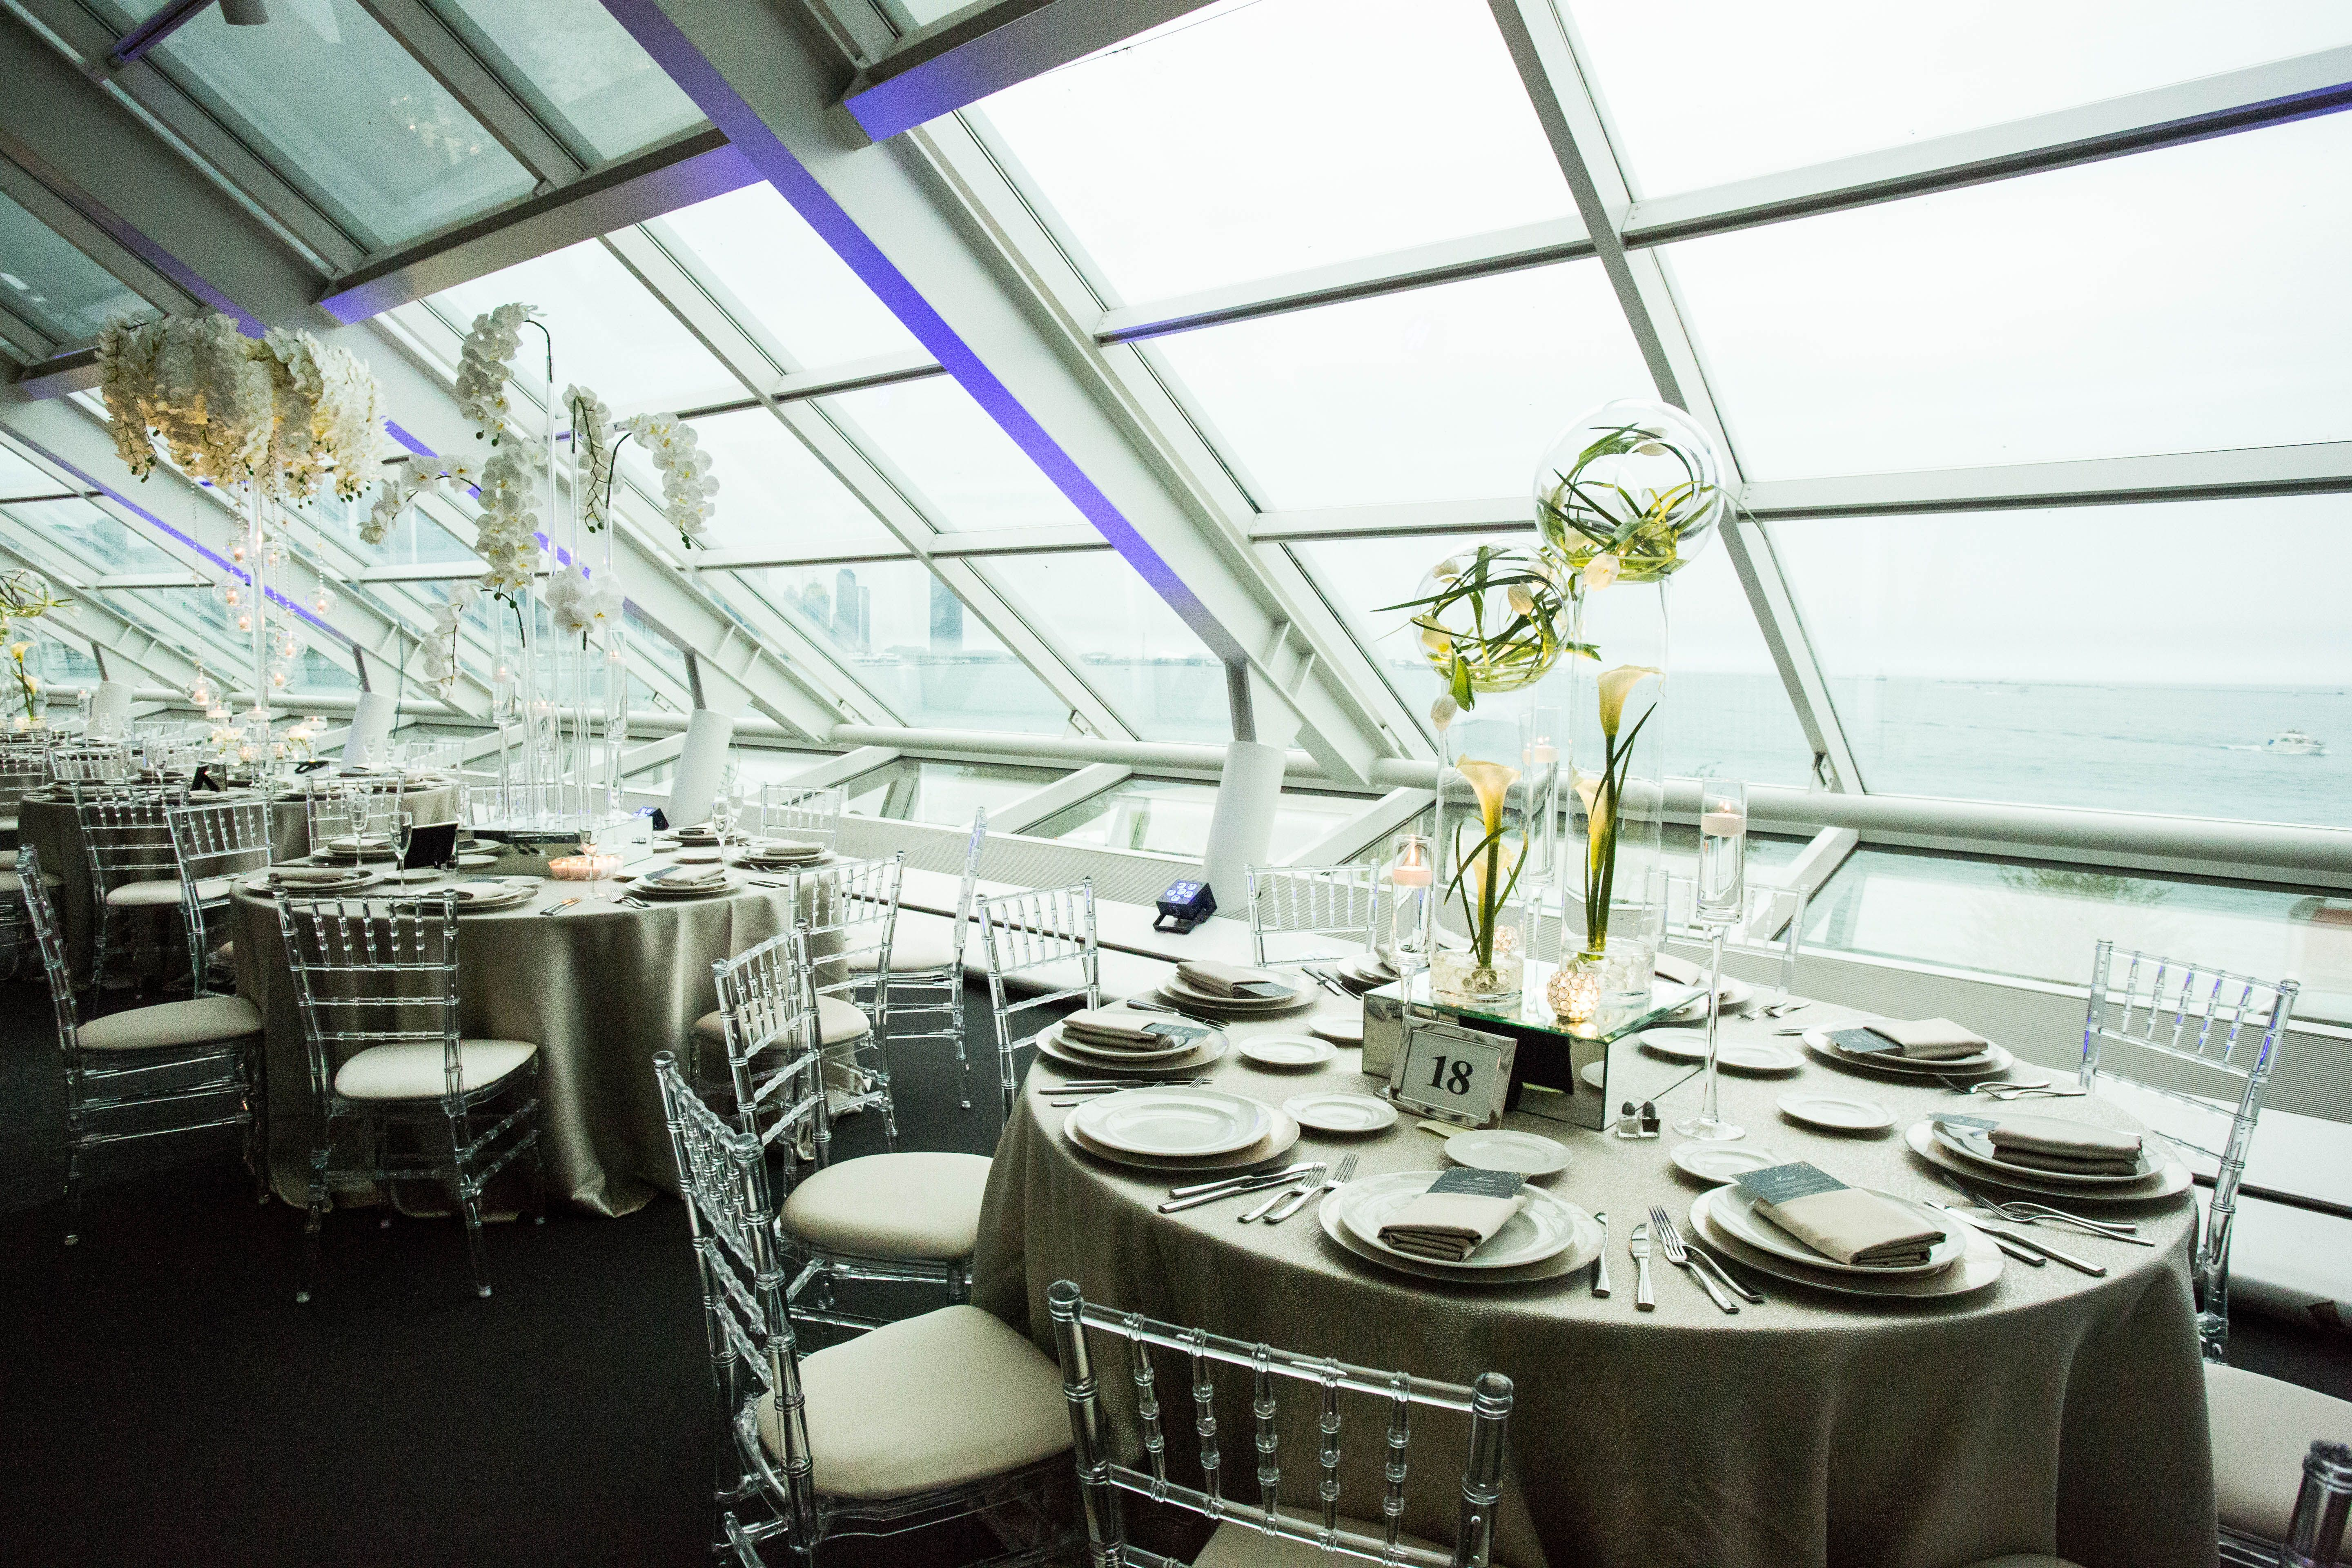 Wedding Decorations At The Chicago Adler Planetarium Event Lighting Wedding Decorations Design